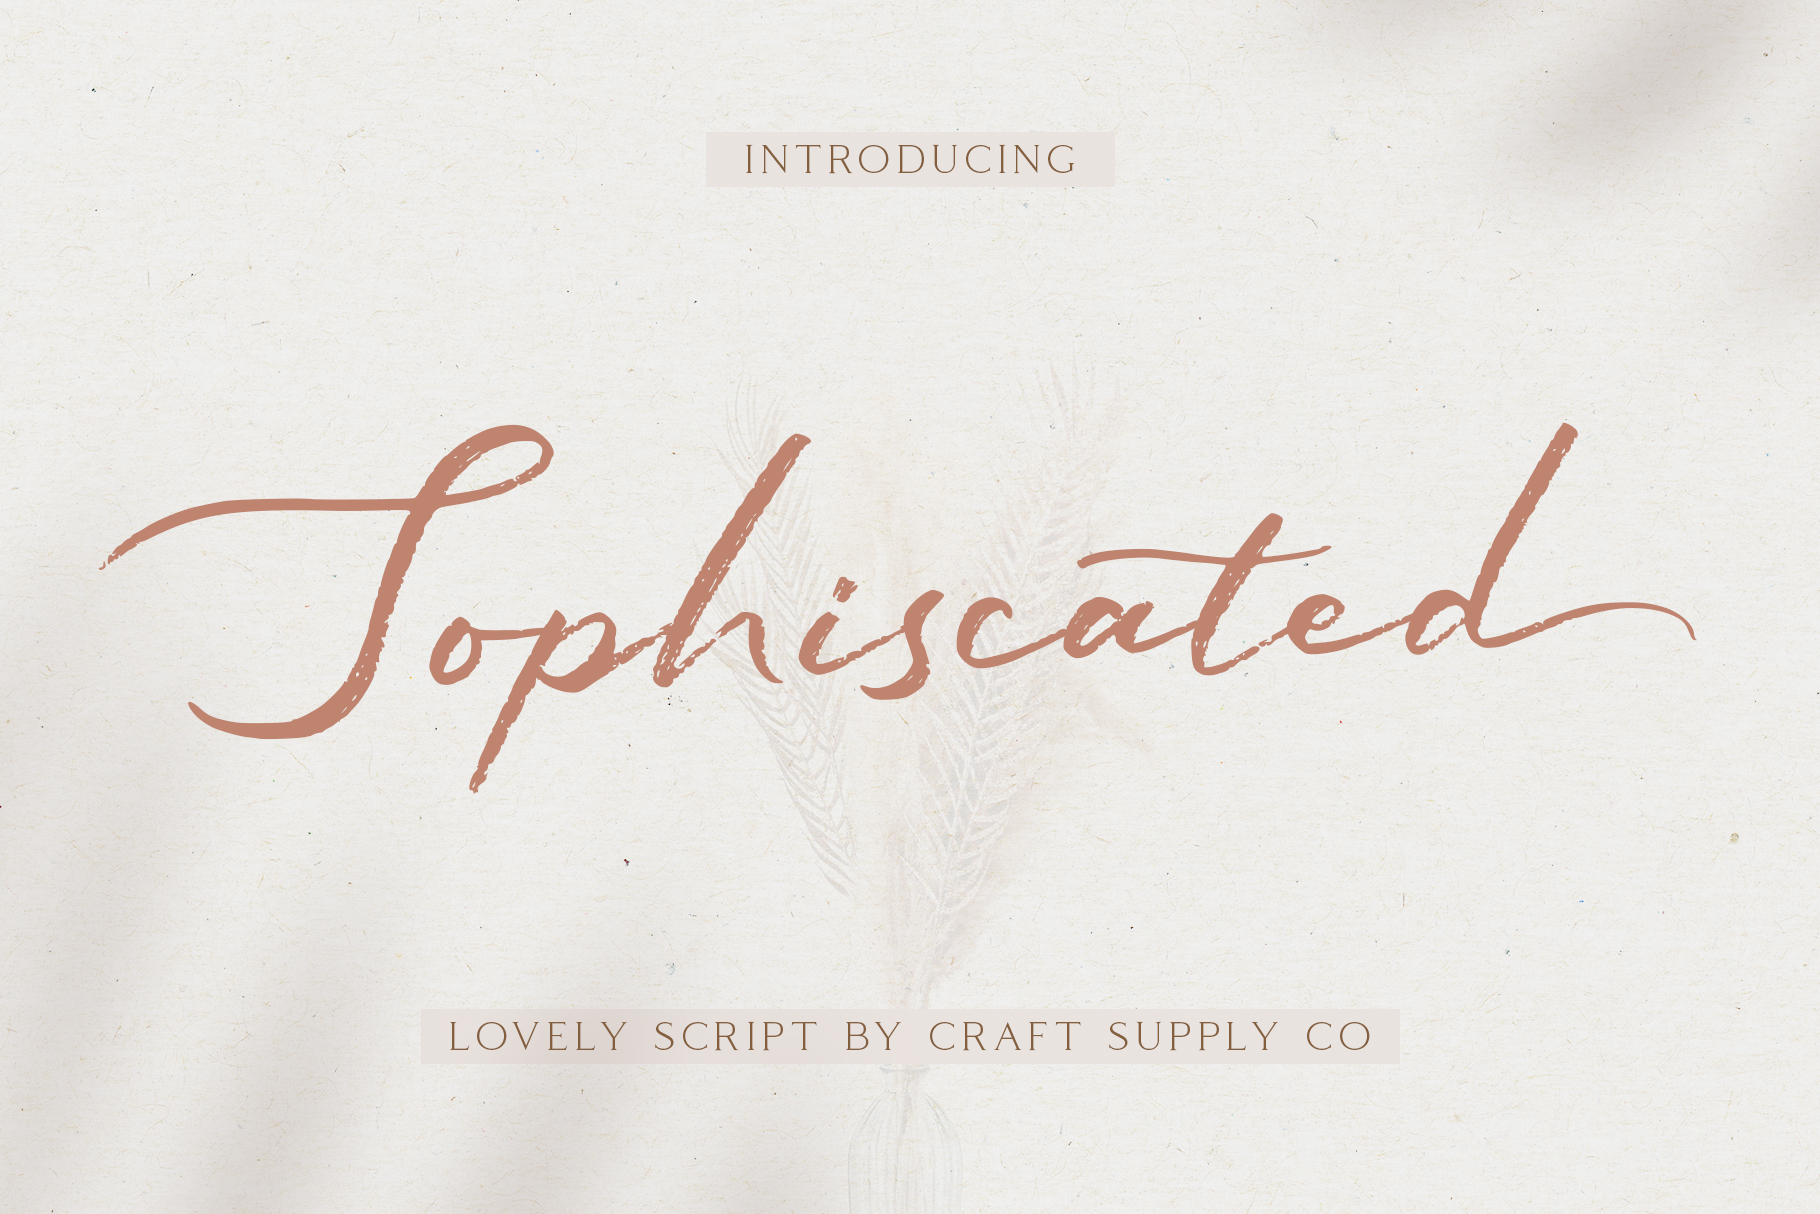 Sophiscated - A Lovely Script Font example image 1